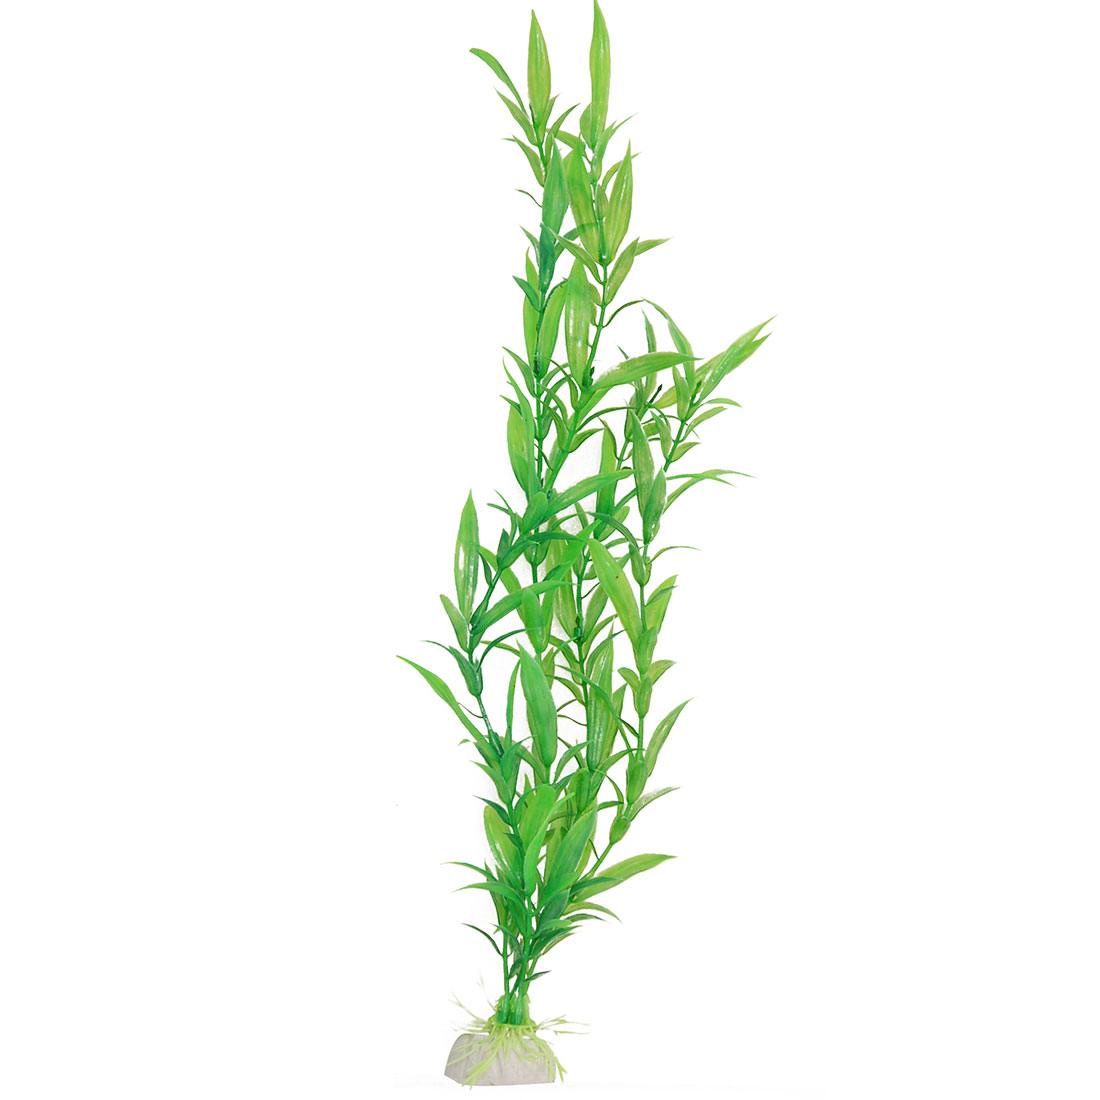 Aquatic-Green-Plant-Plastic-Fish-Tank-Grass-Decoration-Vgpad